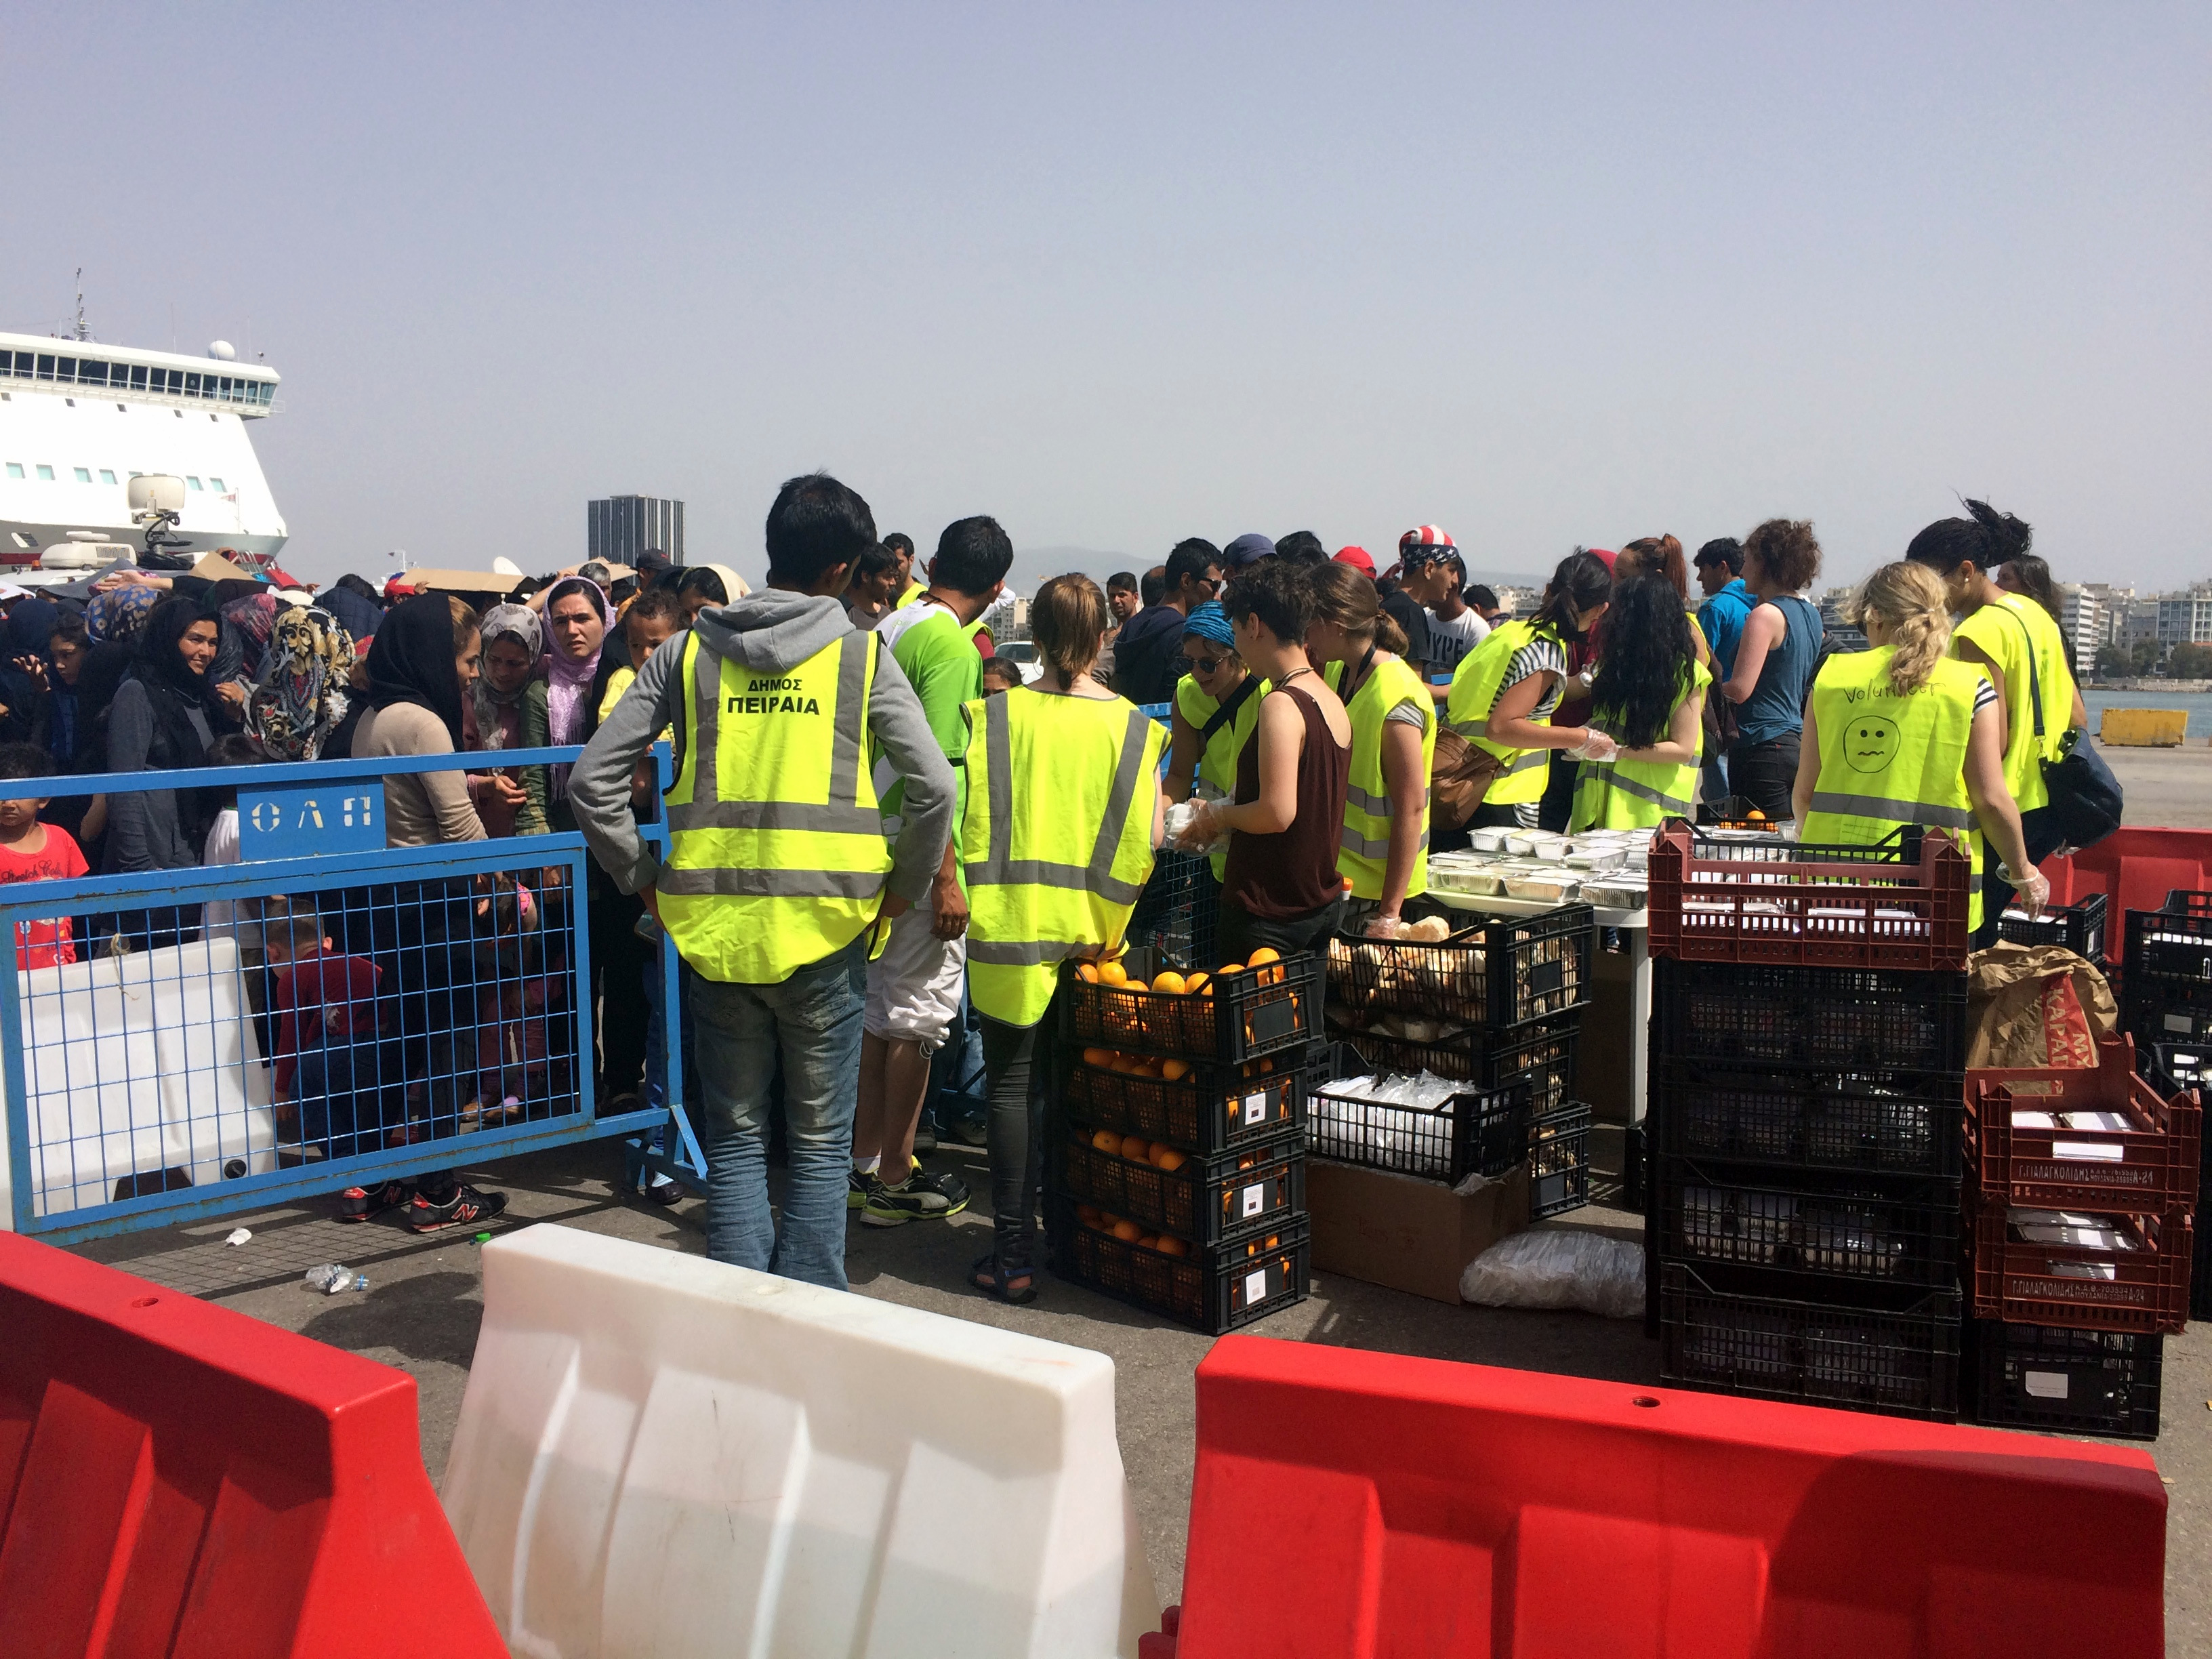 Aid workers distribute food to crowds of people camping on Piraeus port, many who have been there for a month, hoping the Macedonia border will open despite the fact that Macedonia continues to grow its border patrols, Athens, Greece, April 8, 2016. ...